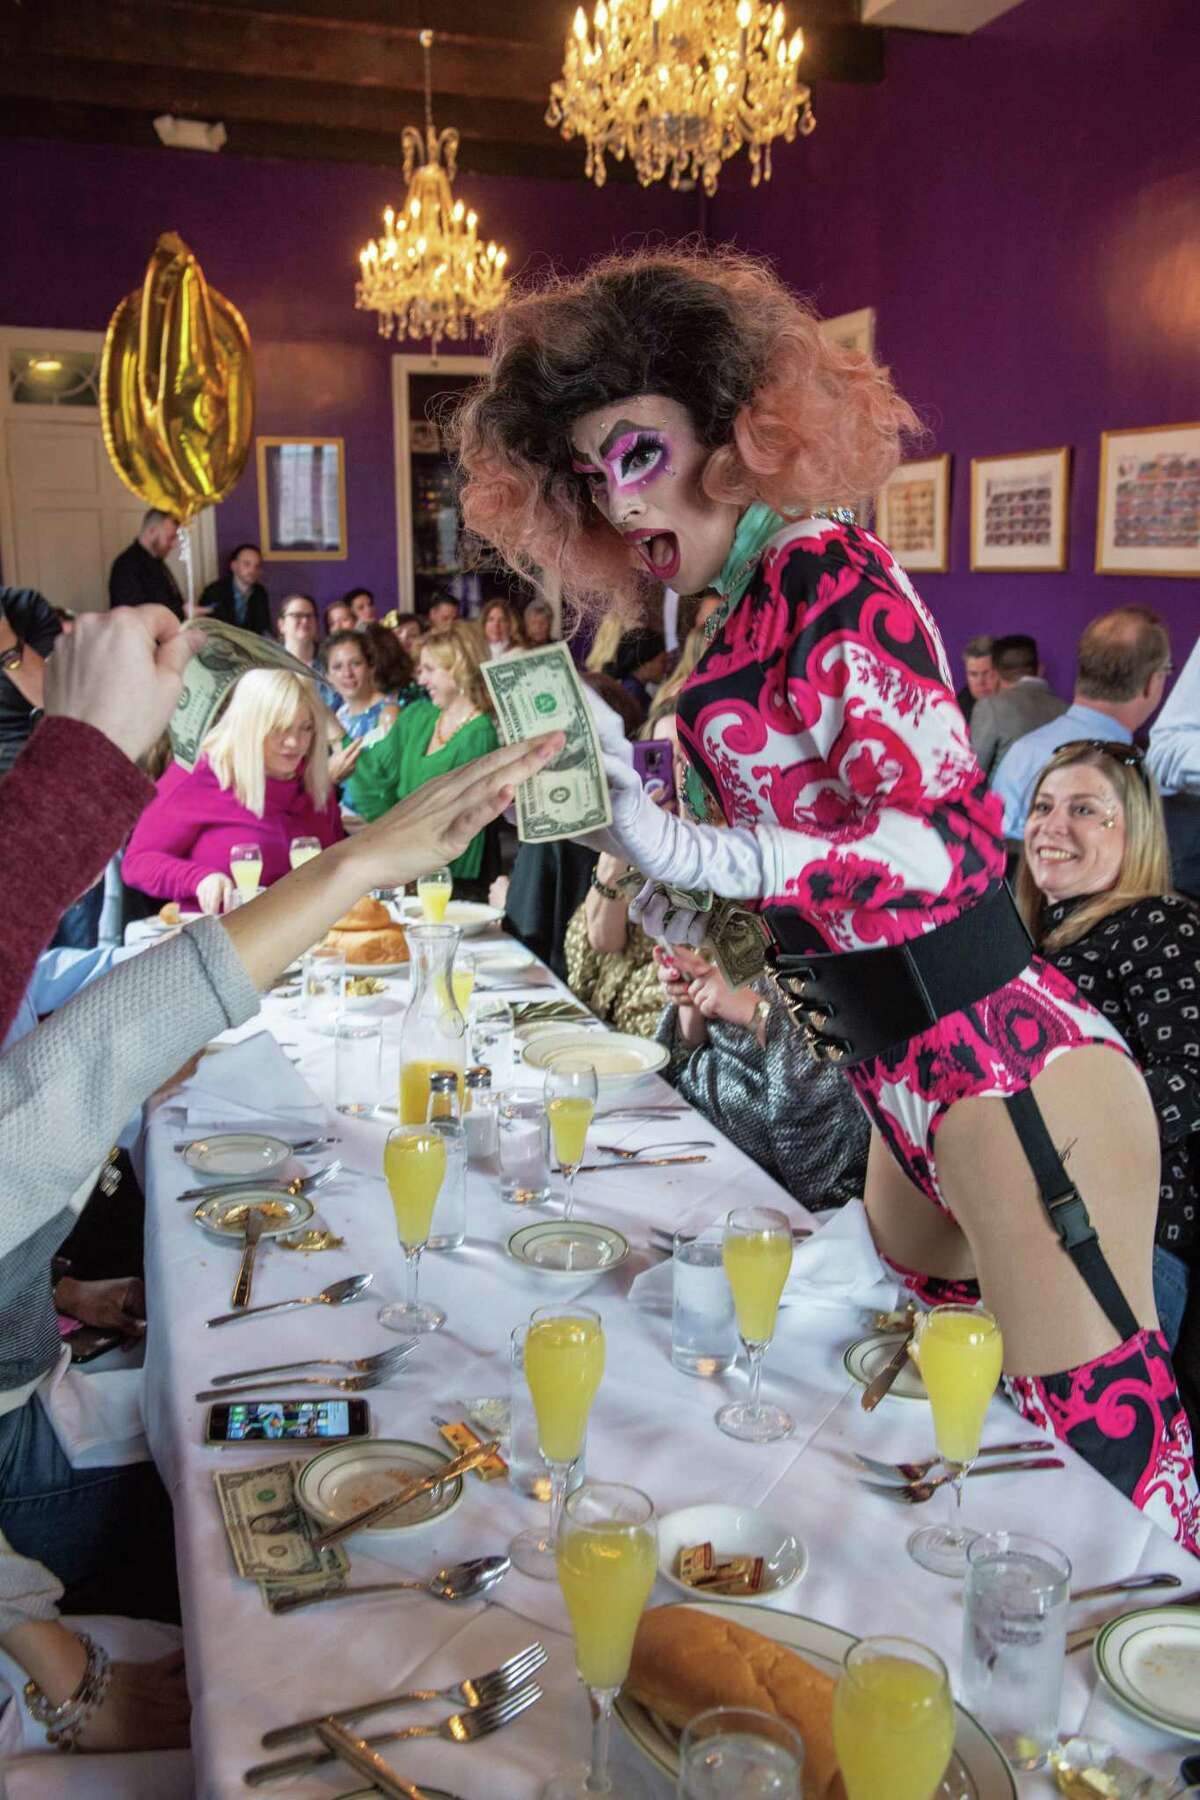 A scene from a New Orleans drag queen brunch from